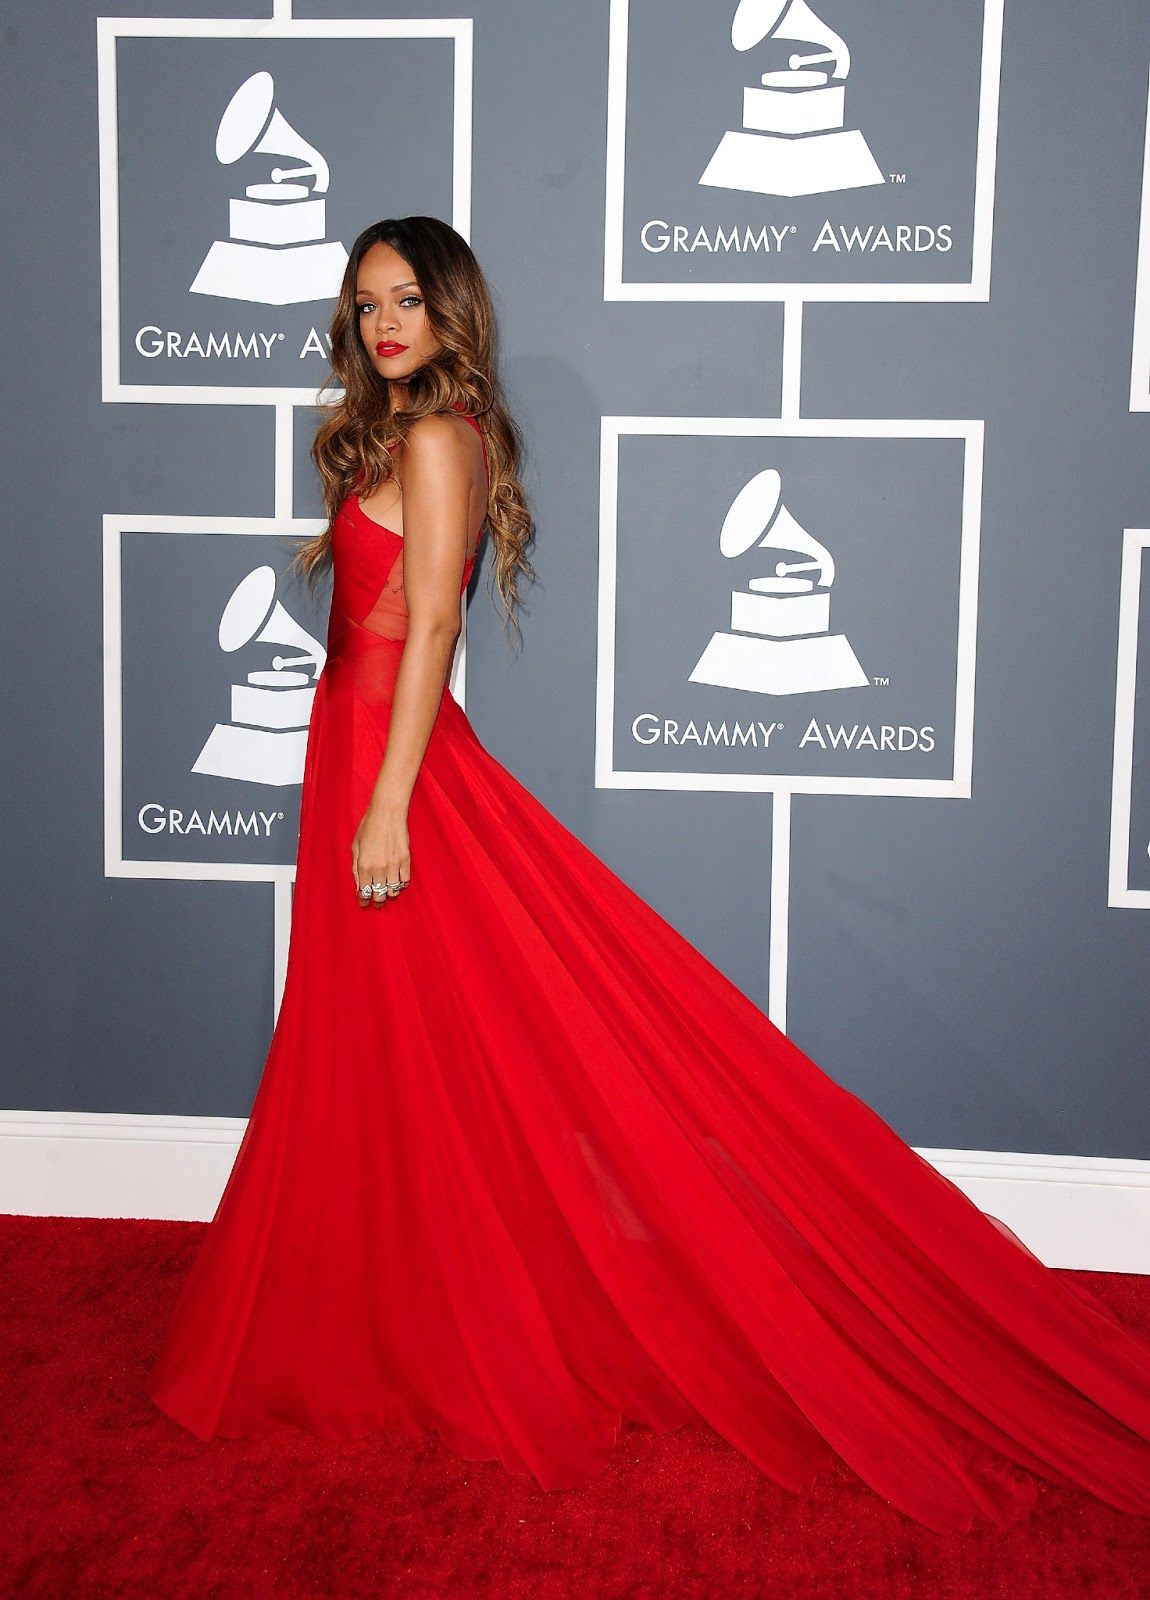 Rihanna Roter Teppich Rihanna Red Dress P R O M